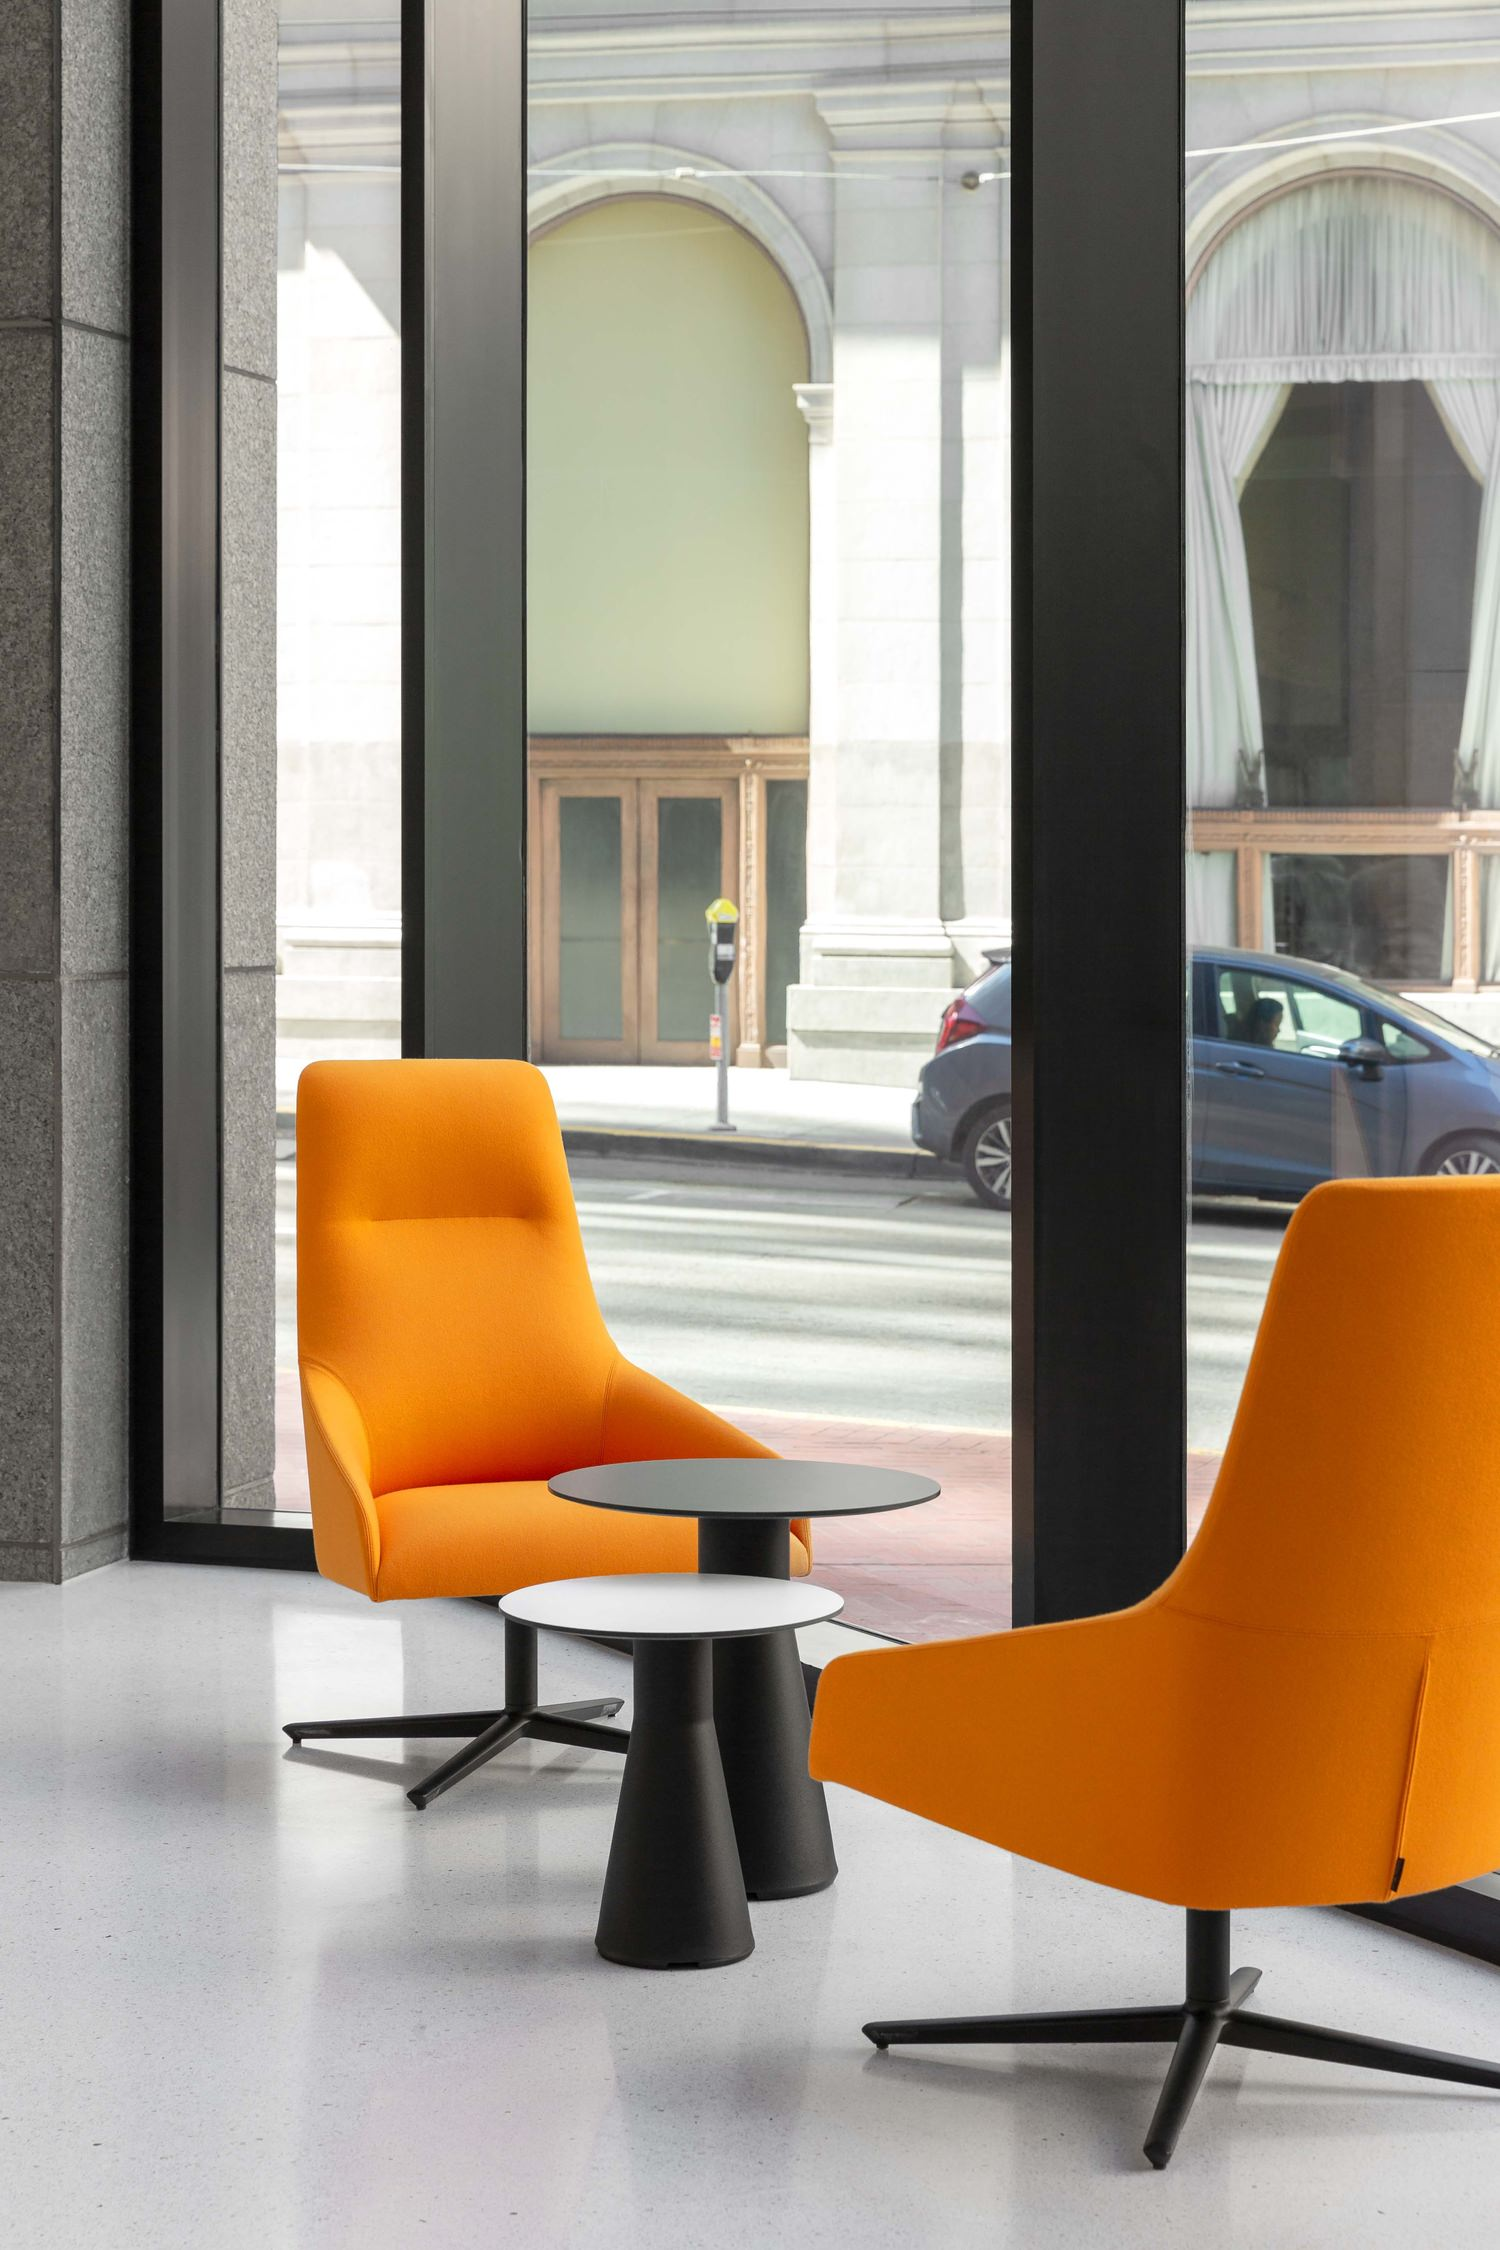 Two orange chairs that are sitting in a lobby around a couple of small tables on a white tile floor.